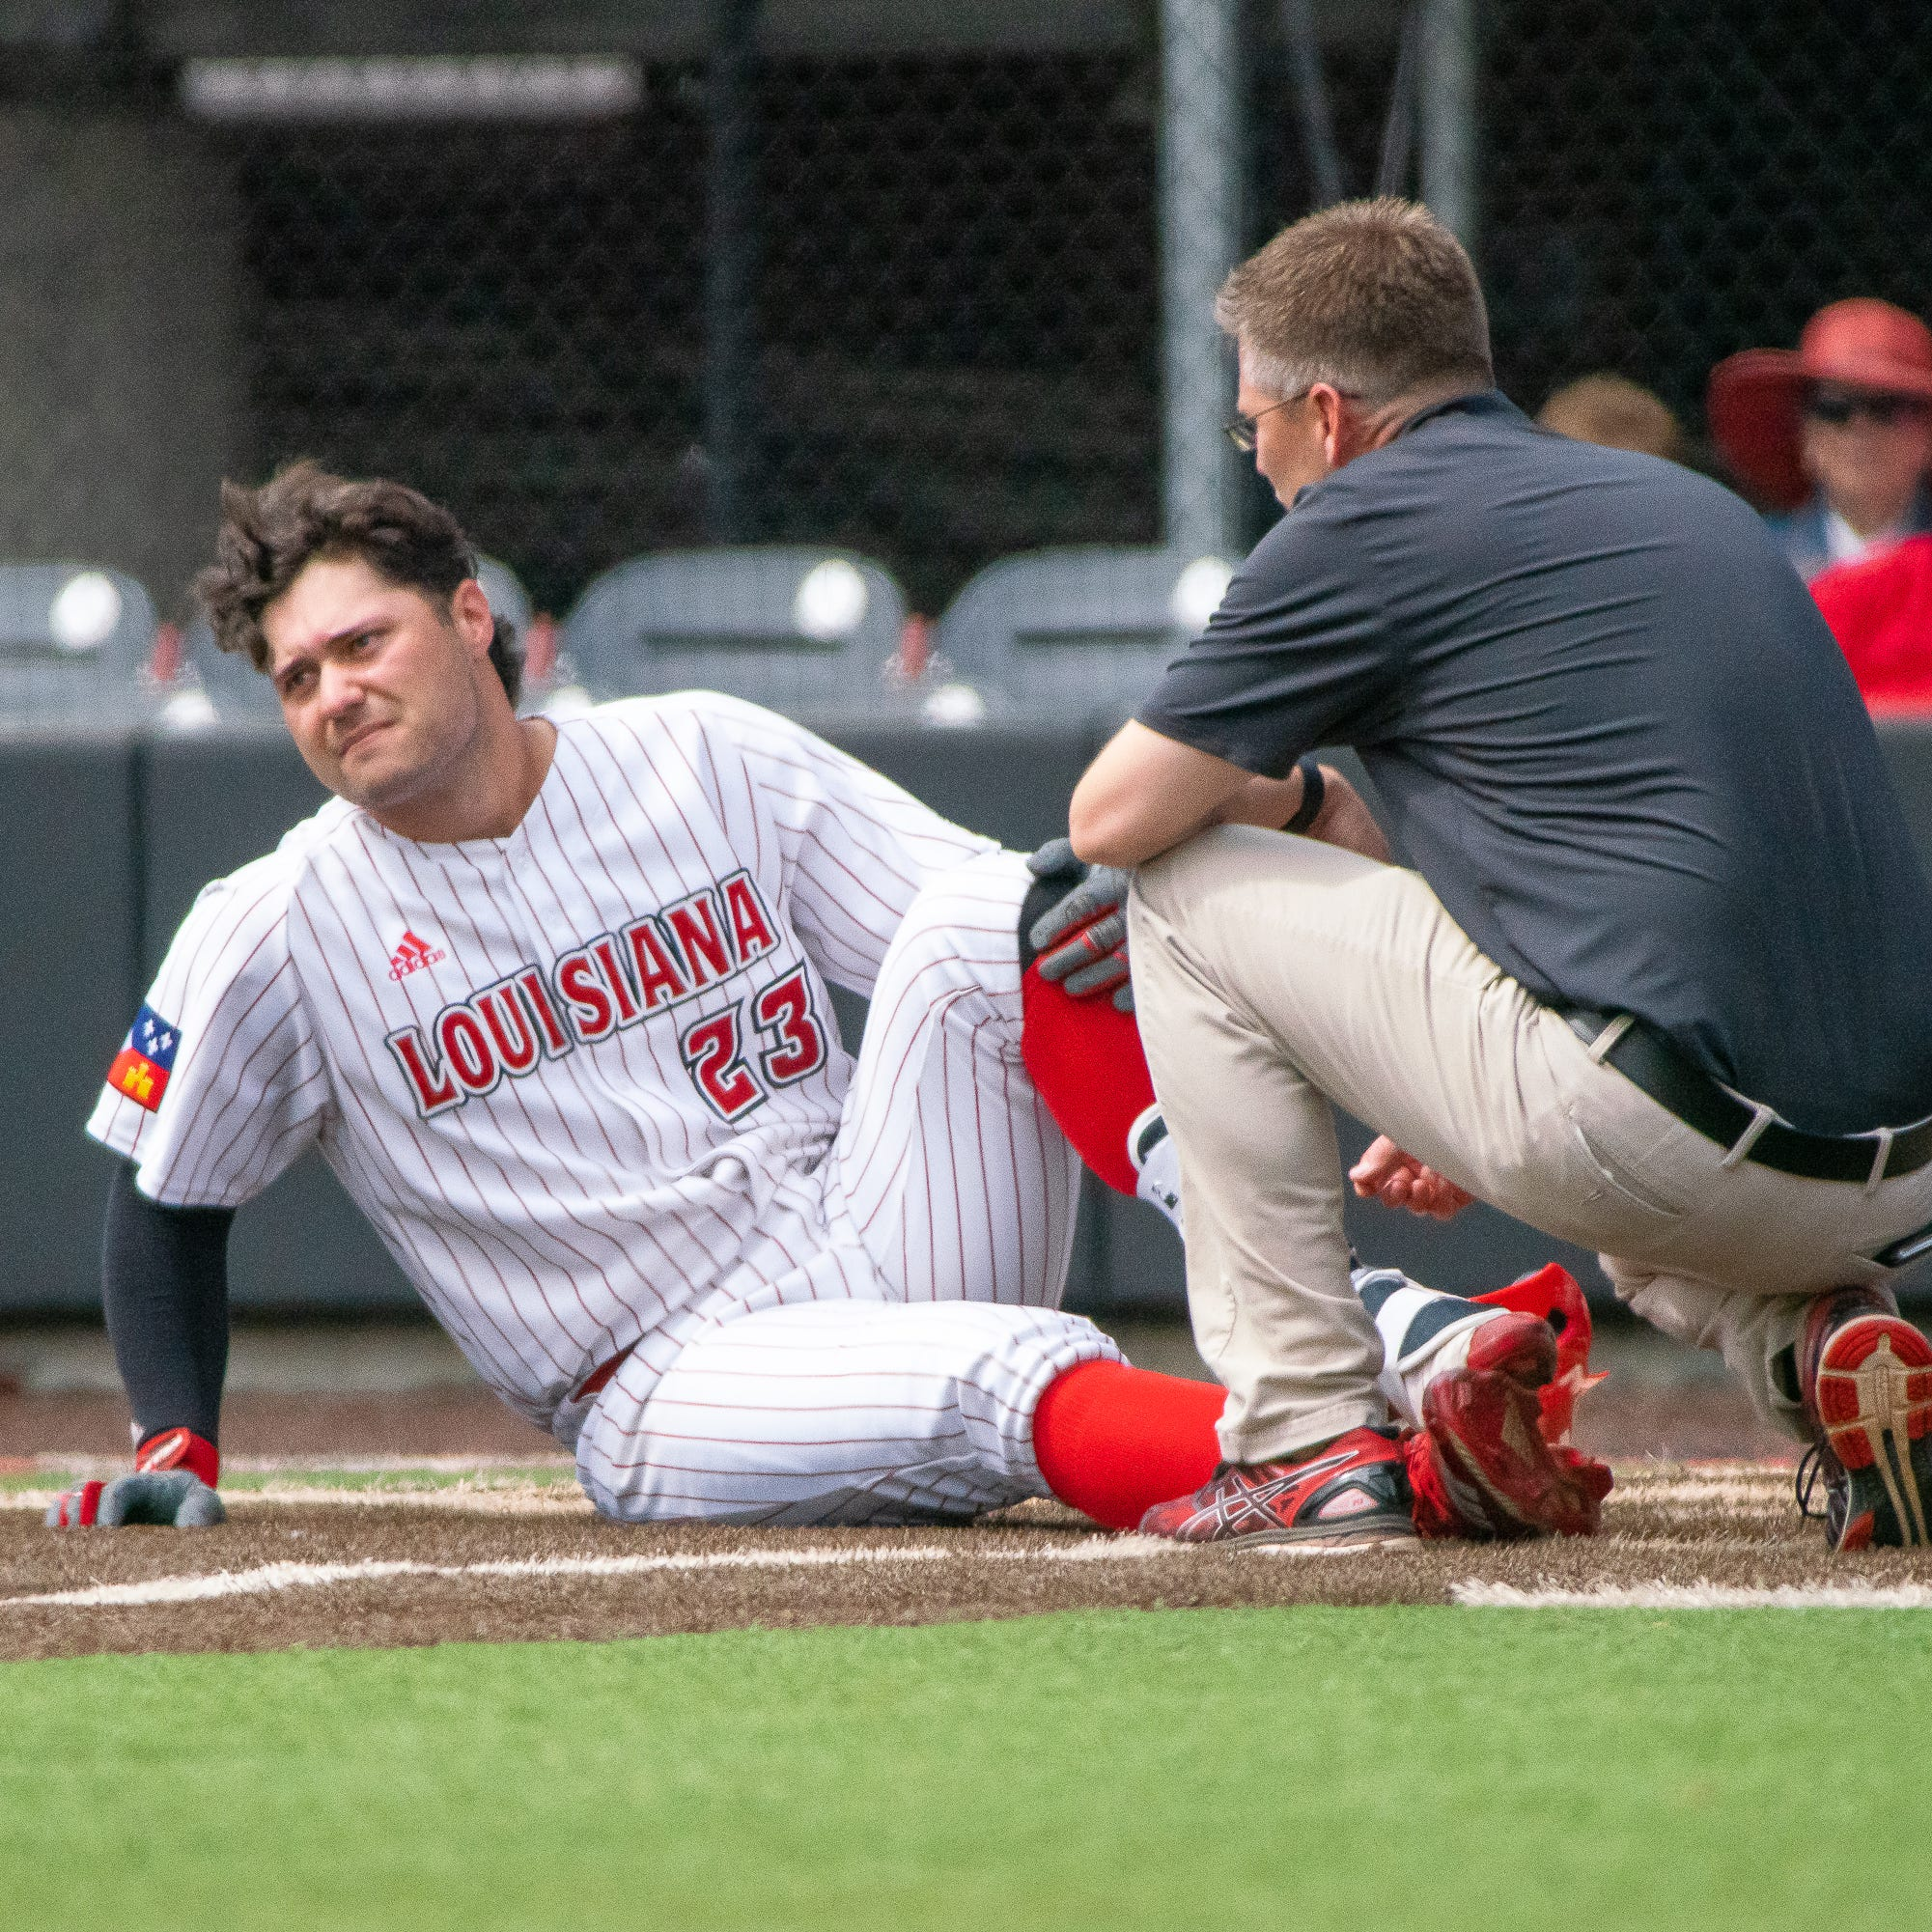 Cajuns catcher Monica not ready to rest his case just yet